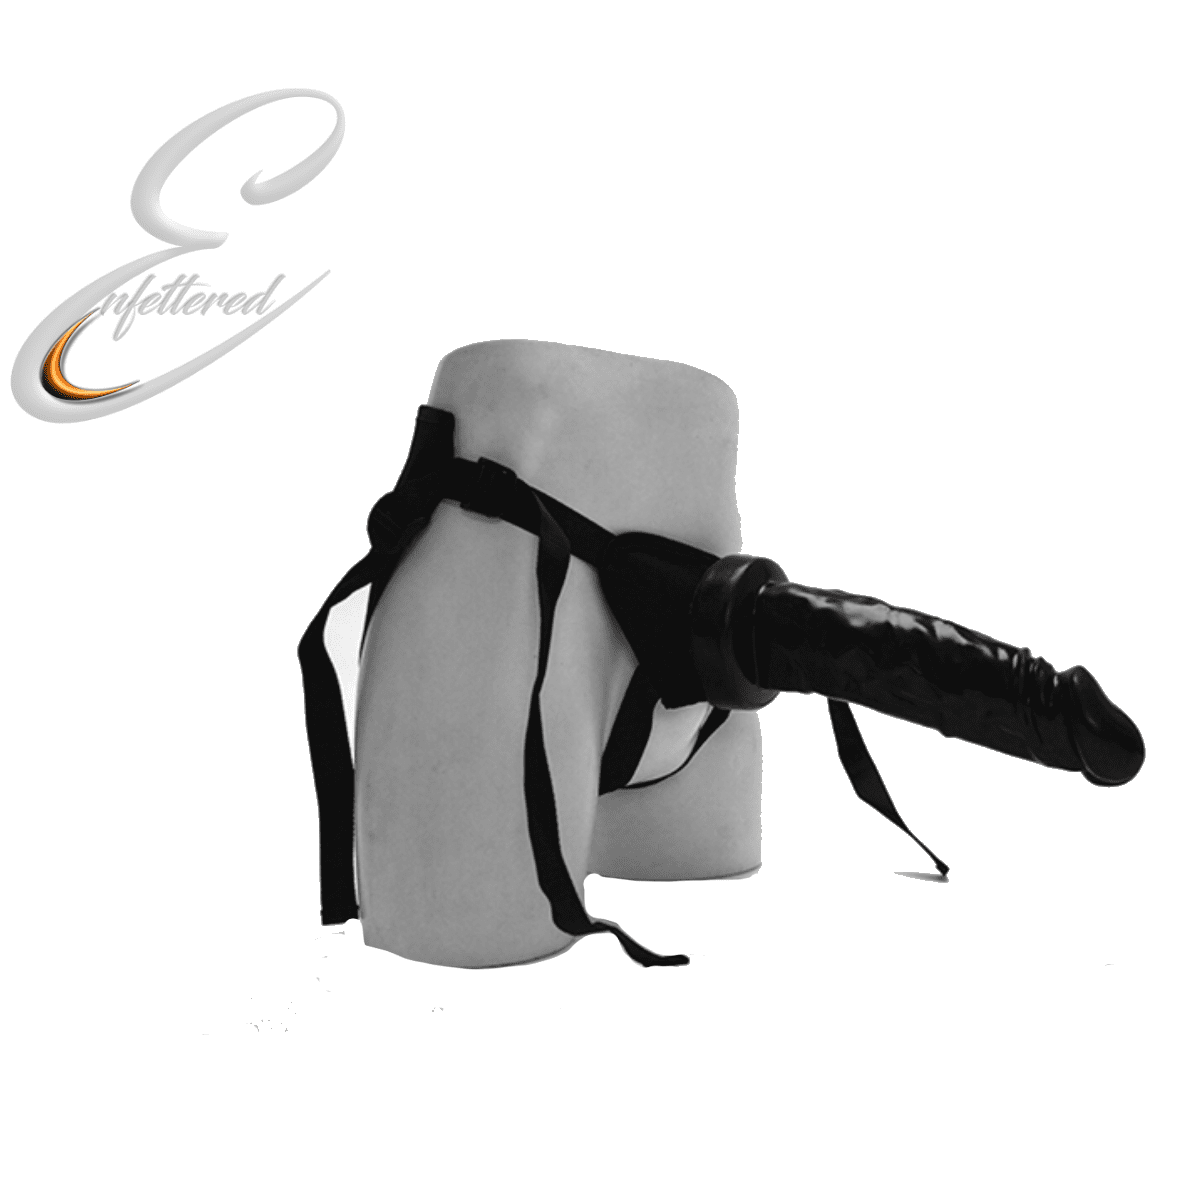 Enfettered Hung System Harness – Strap On